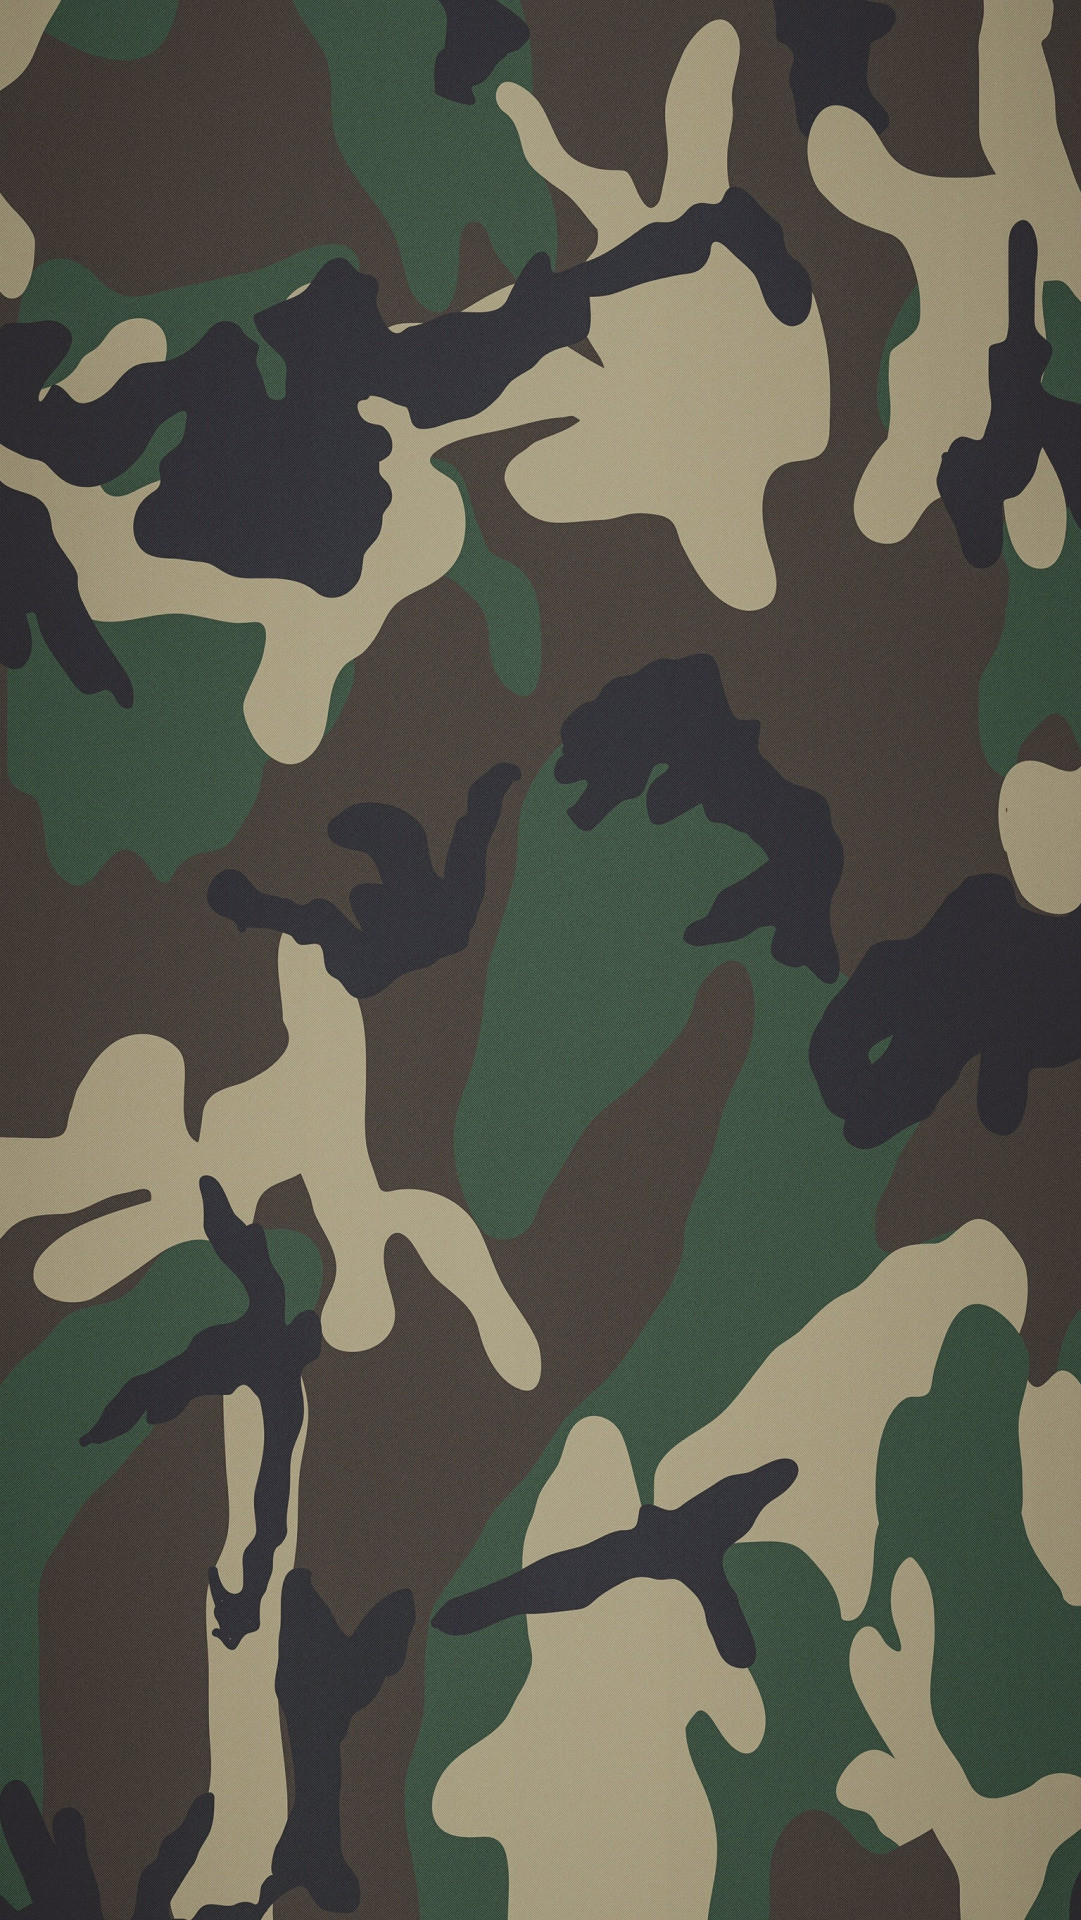 Res: 1081x1920, Camo Wallpapers Android Apps on Google Play | HD Wallpapers | Pinterest | Camouflage  wallpaper, Wallpaper and Wallpapers android